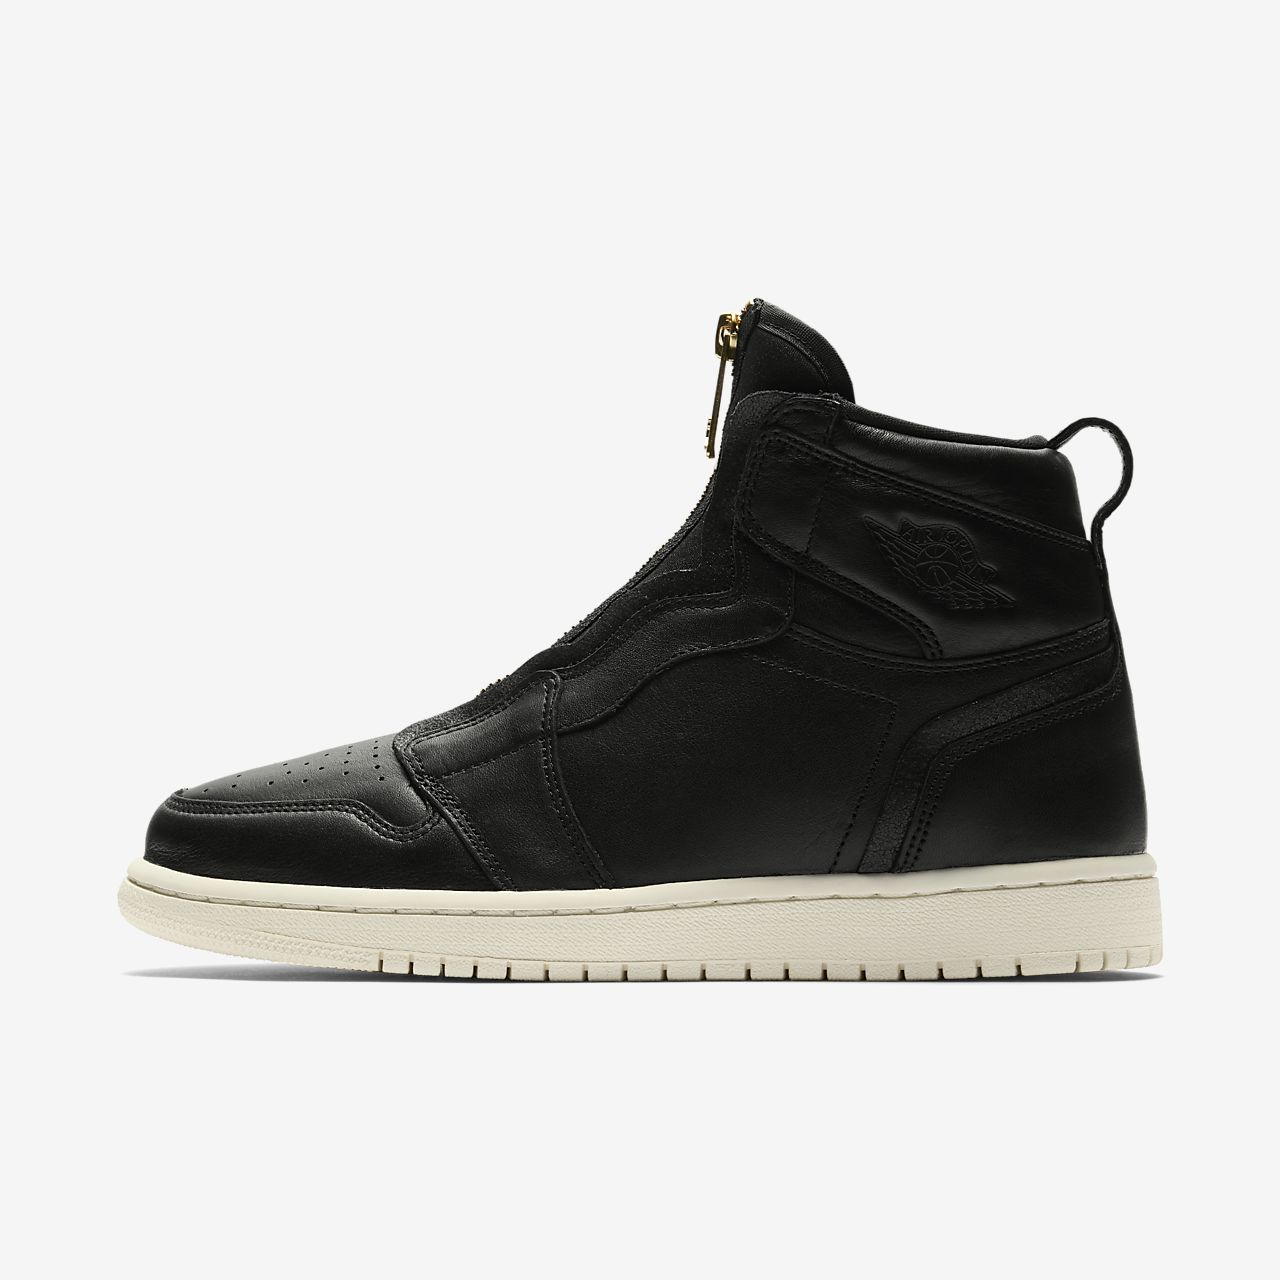 5fc7501936b2 Air Jordan 1 High Zip Women s Shoe. Nike.com